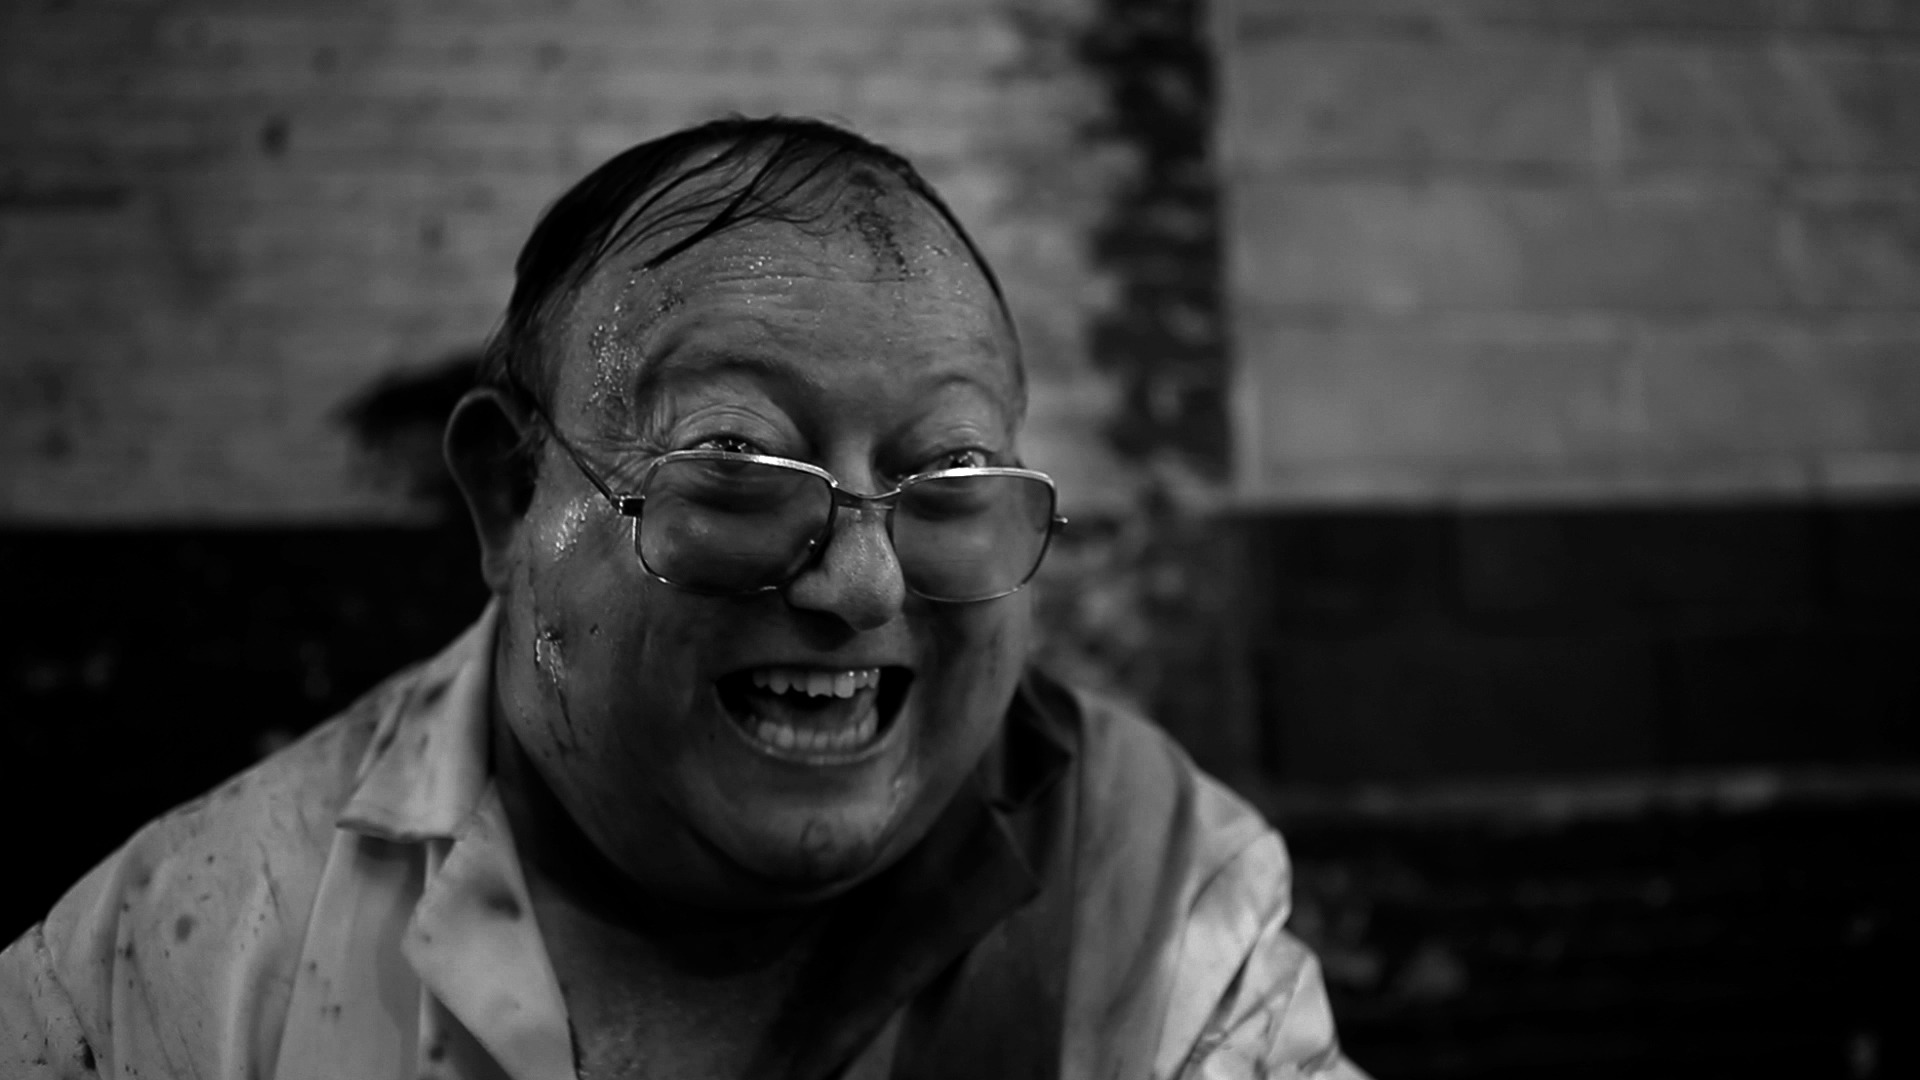 The Human Centipede: di che cosa parla la saga cult di Tom Six